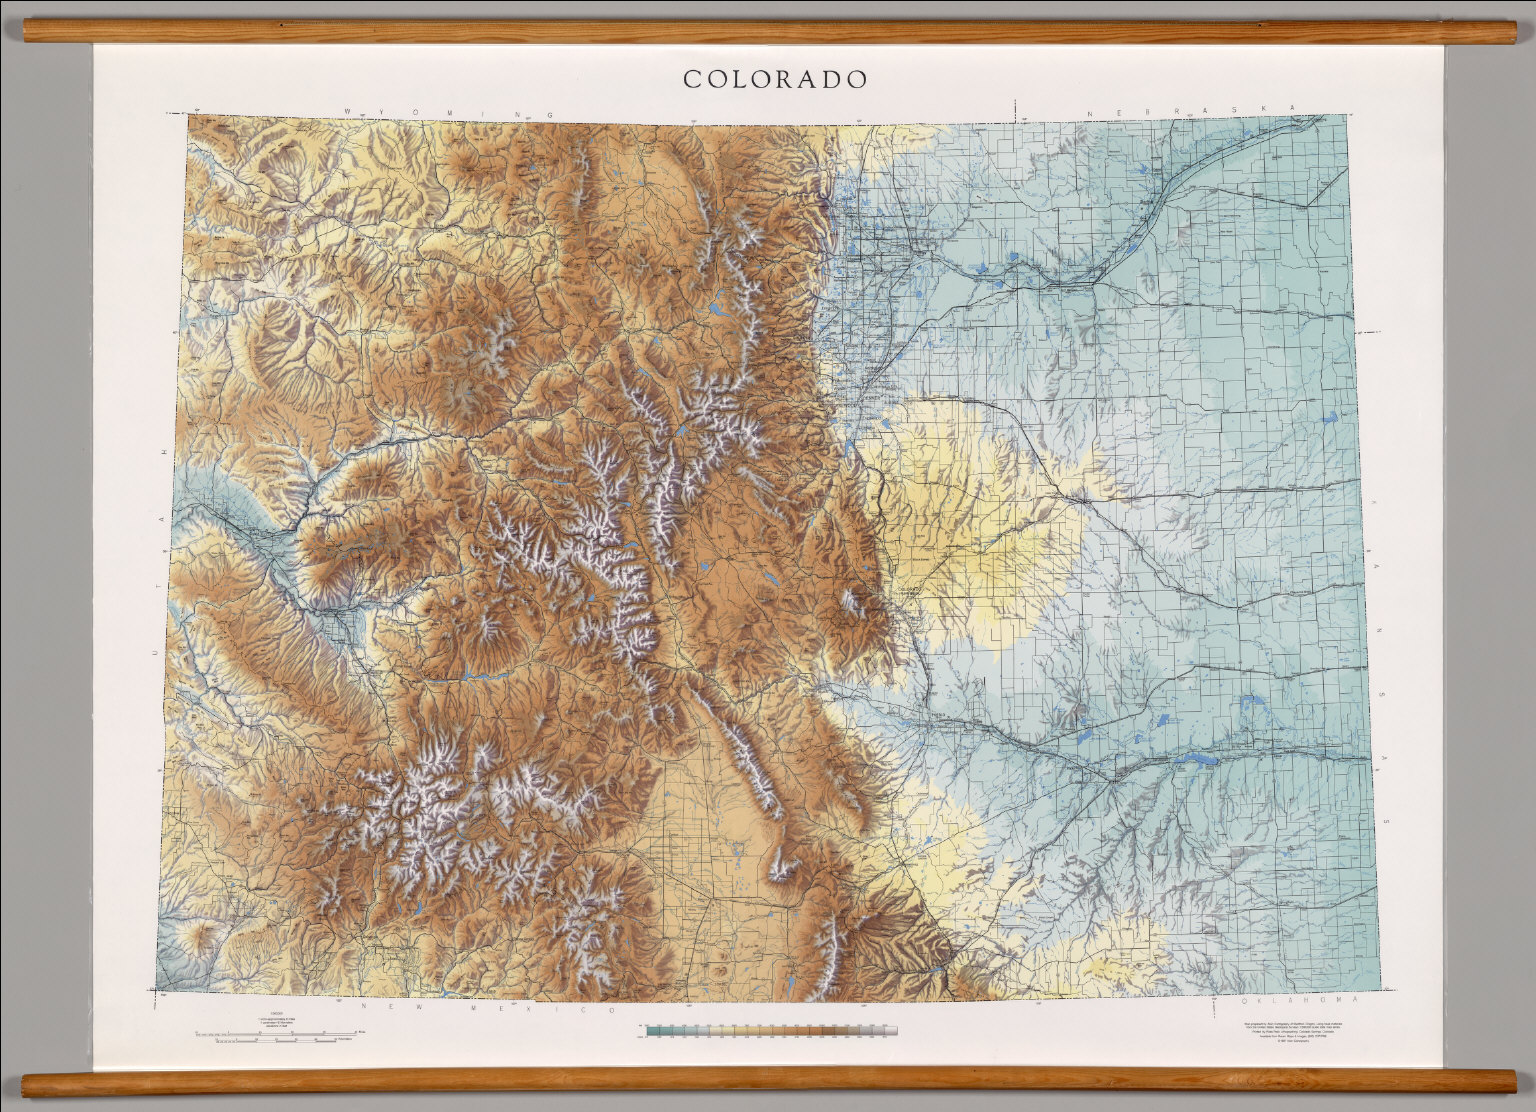 Colorado -- Physical. - David Rumsey Historical Map Collection on climate map colorado, map of colorado, old railroad maps colorado, historical map colorado, service map colorado, geographical regions of colorado, elevation map colorado, window rock national monument colorado, thematic map colorado, geological map colorado, flag of colorado, horseback riding estes park colorado, road map colorado, usa map colorado, topographic map colorado, street map longmont colorado, detailed map colorado, lake avery meeker colorado, state reference map colorado, vail back bowls trail map colorado,